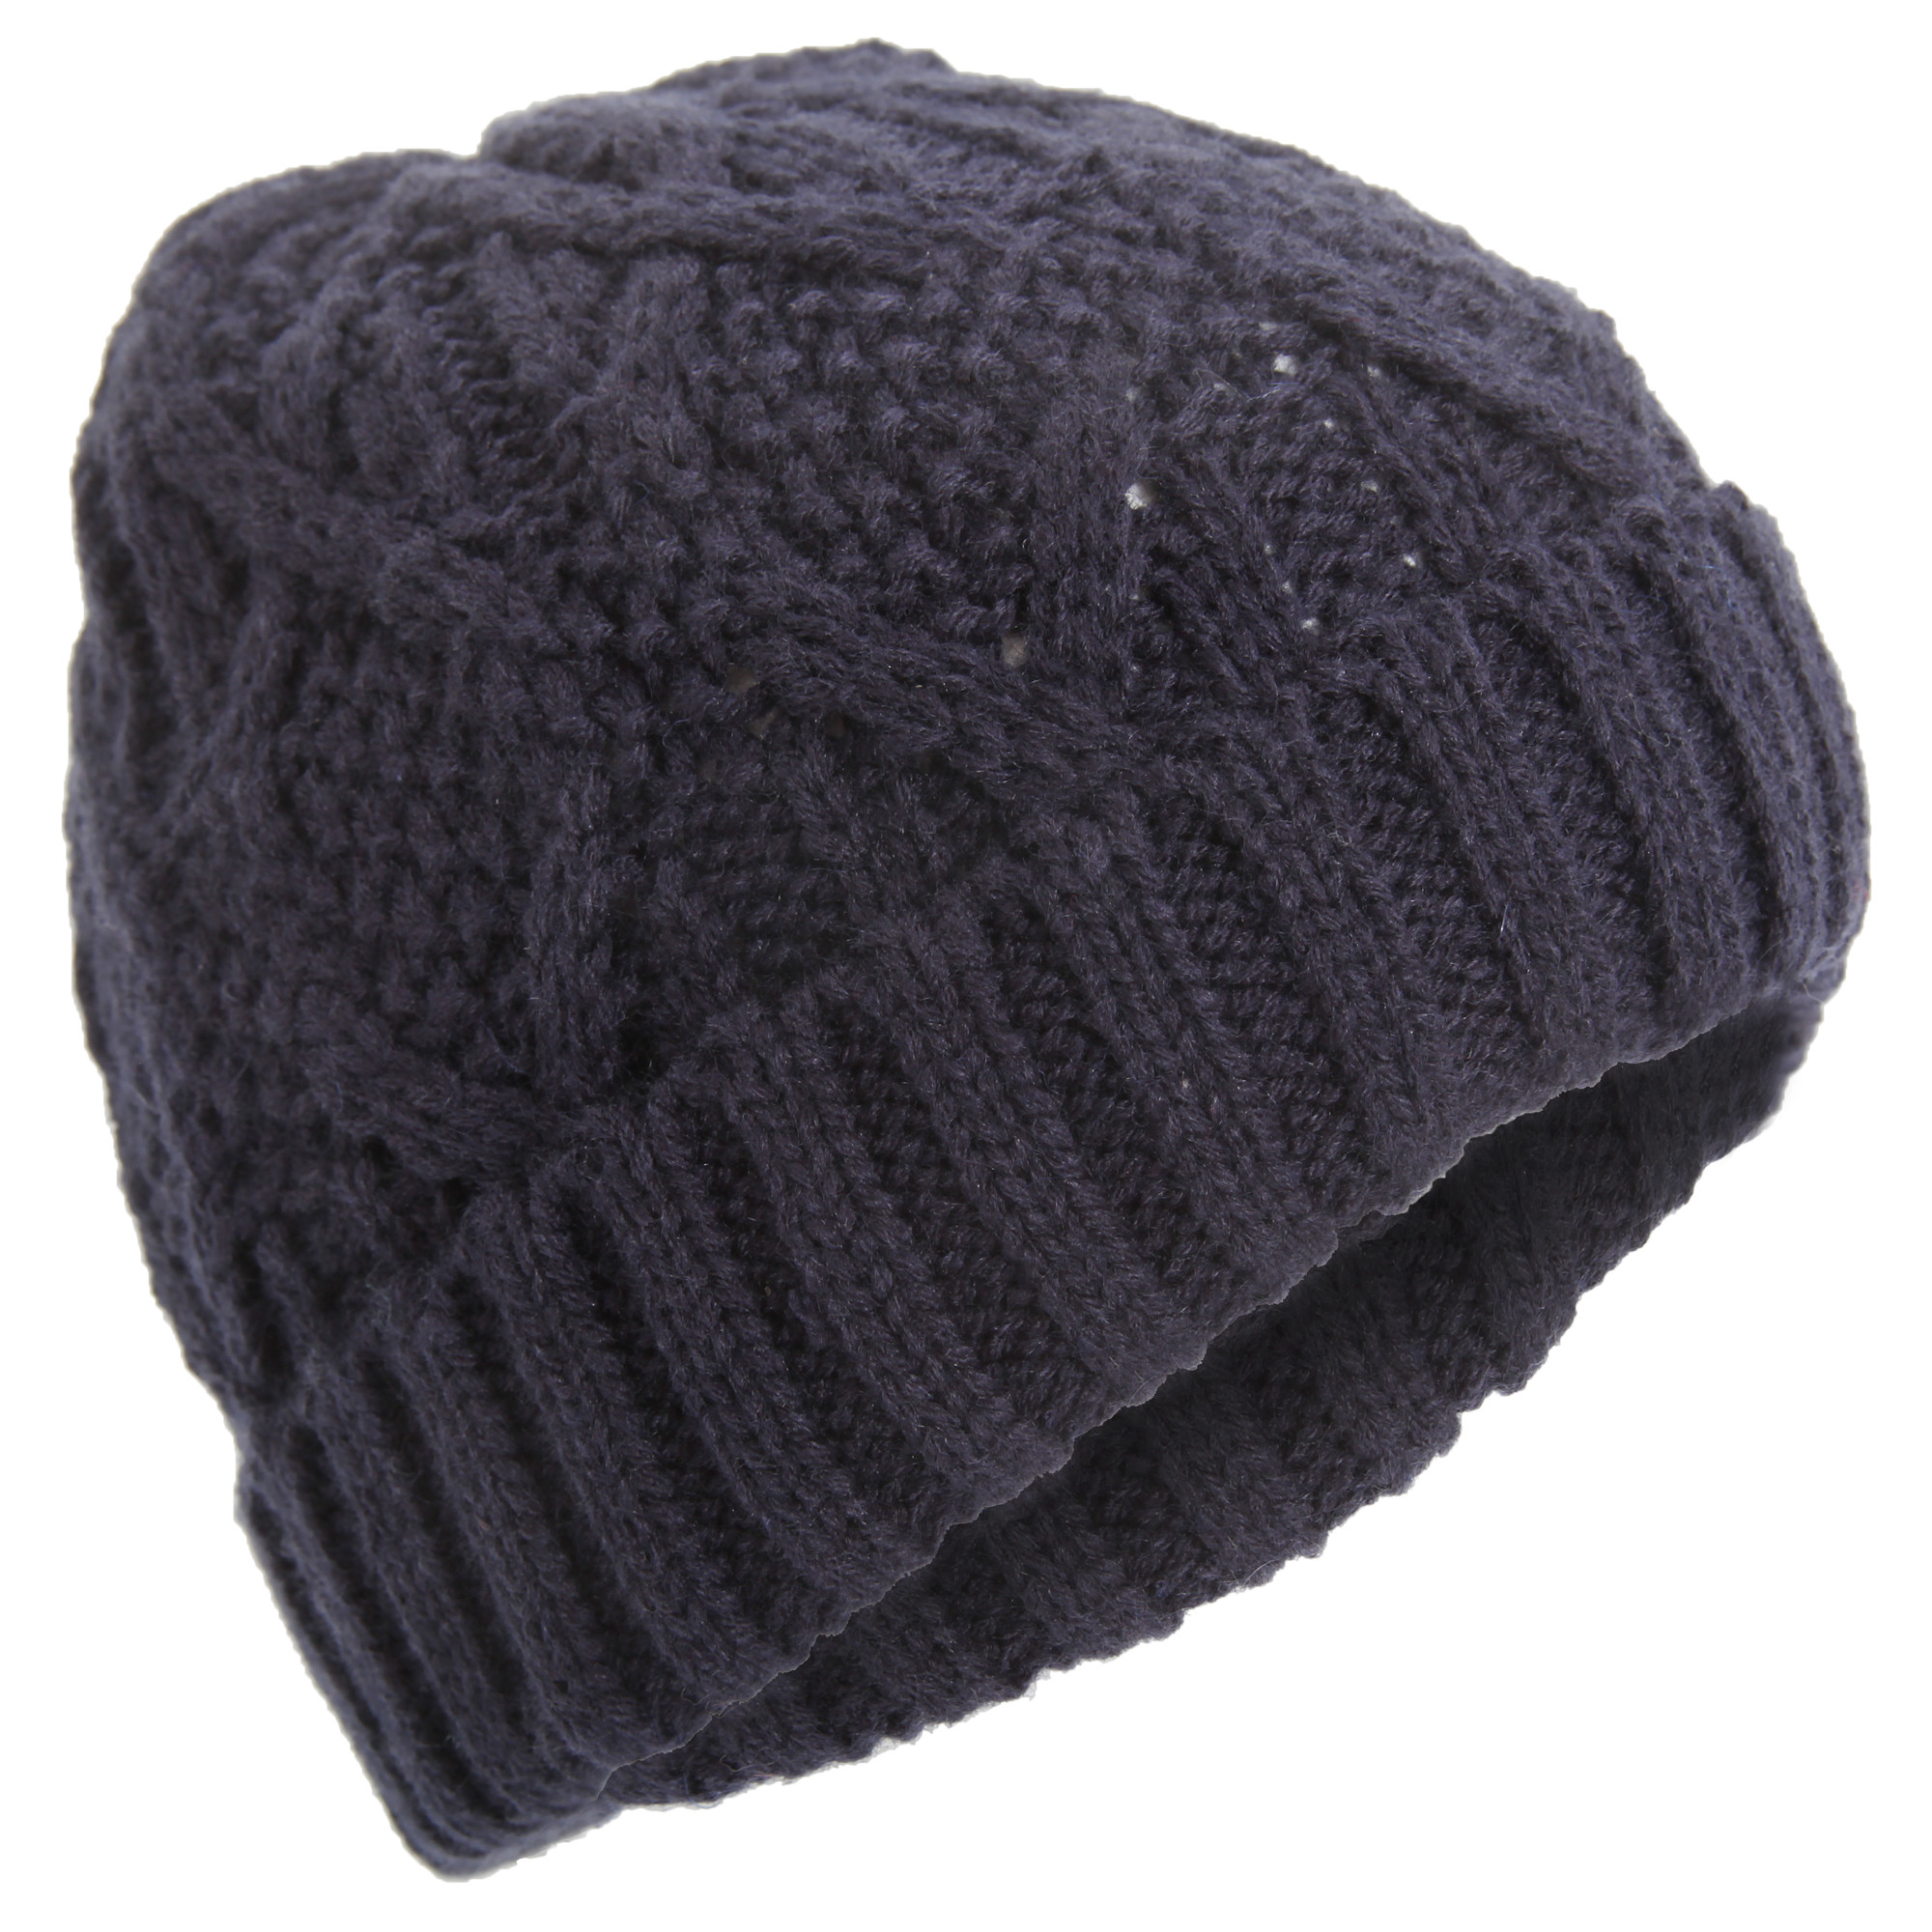 Mens Classic Cable Knit Winter Beanie Hat